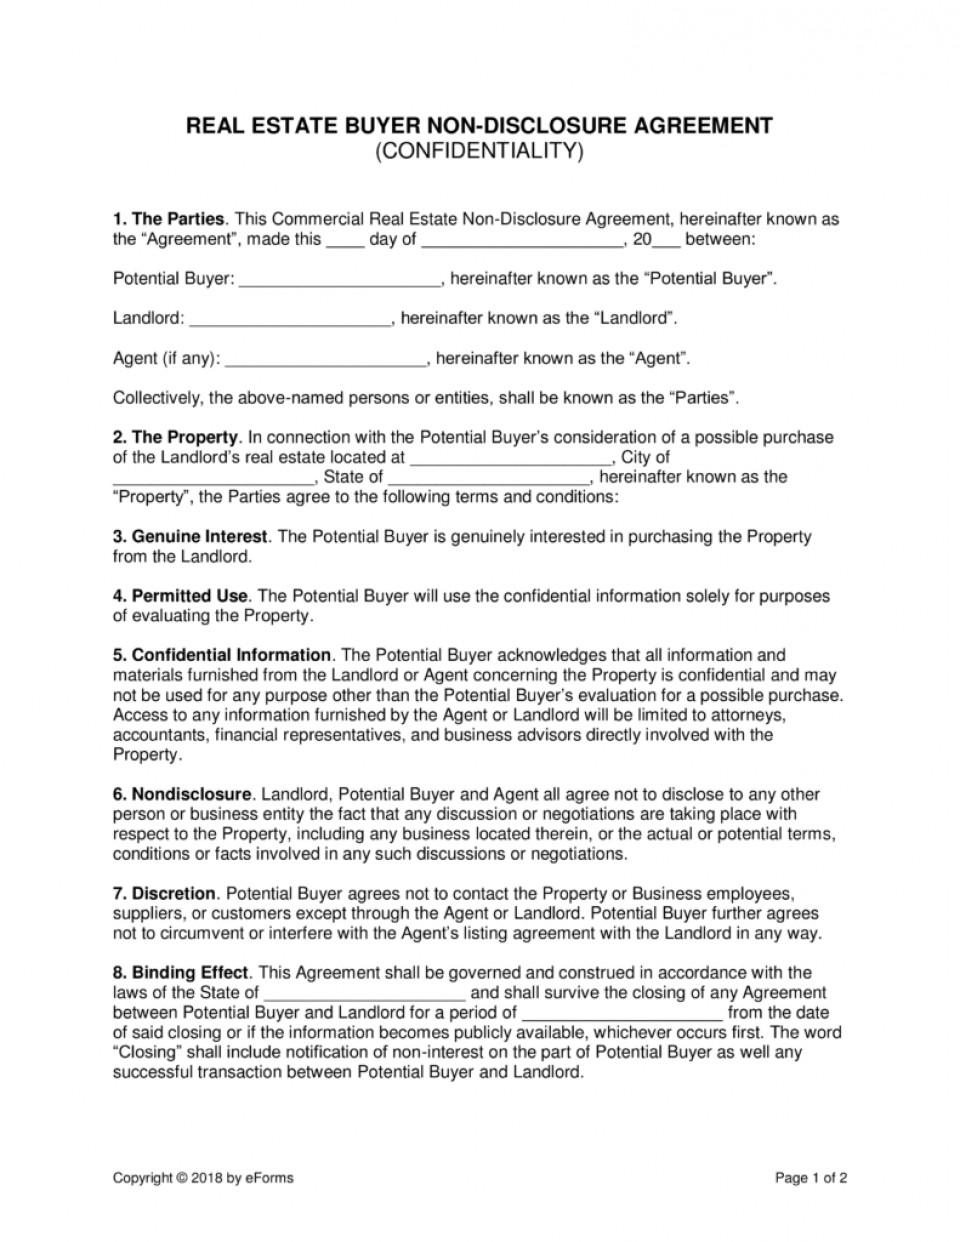 Employee Non Disclosure Agreement Template Australia